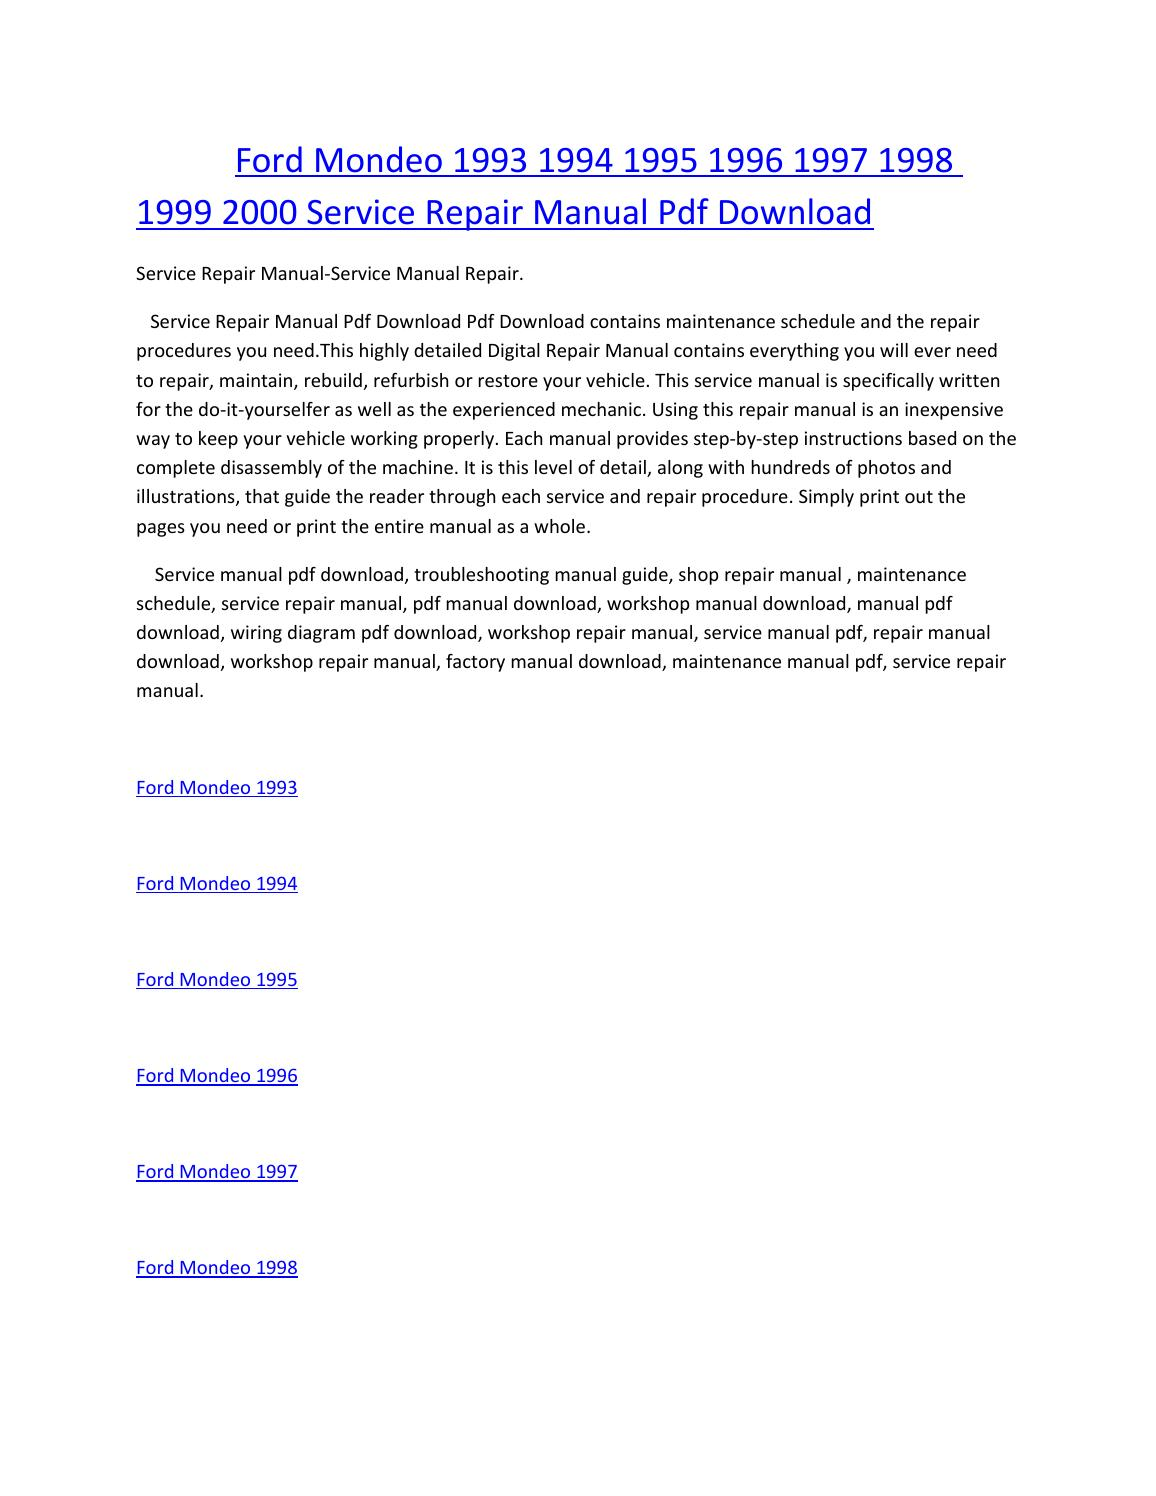 Ford mondeo 1993 1994 1995 1996 1997 1998 1999 2000 service manual repair  pdf download by amurgului - issuu